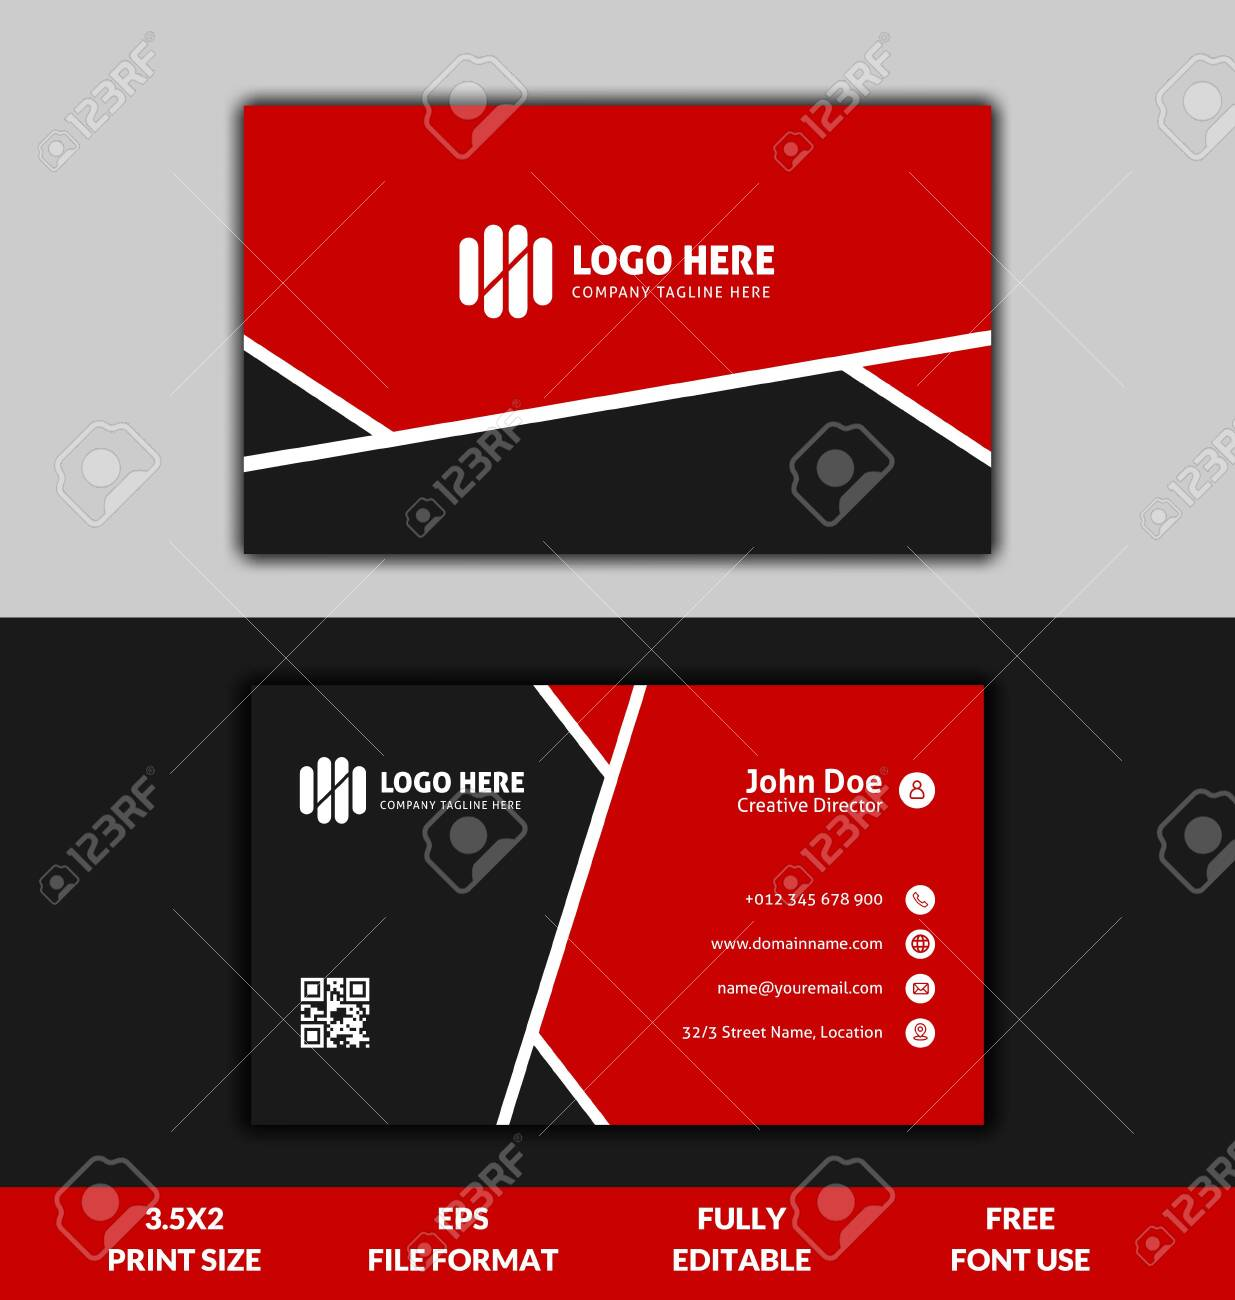 Clean And Corporate Business Card Template, Red And Black Color Throughout Template For Cards To Print Free